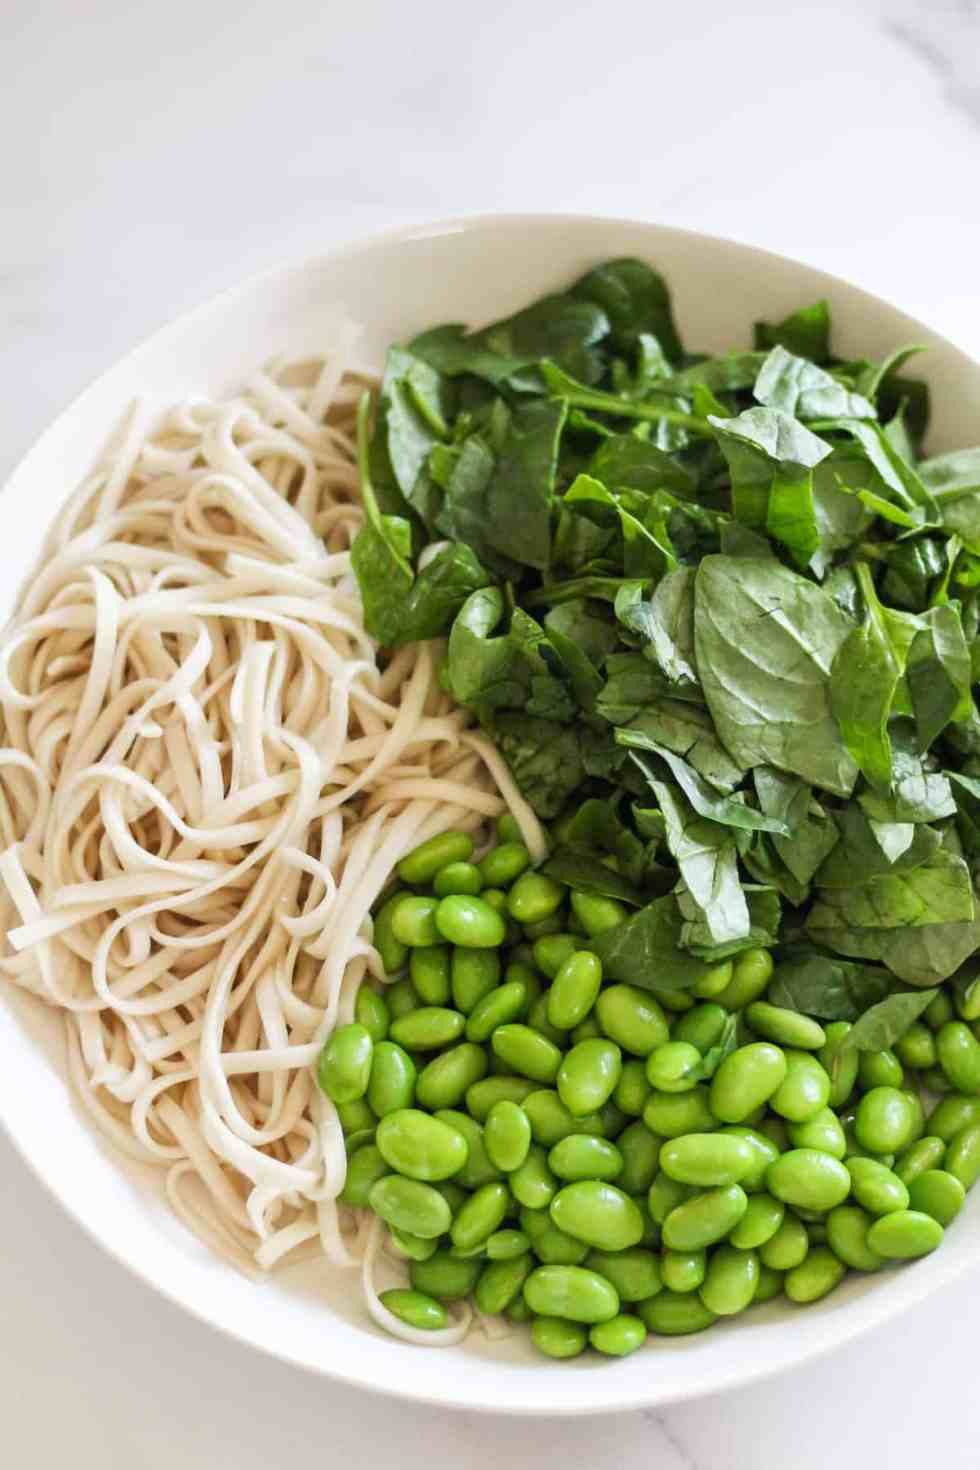 Noodles, edamame, and chopped spinach in a white bowl.